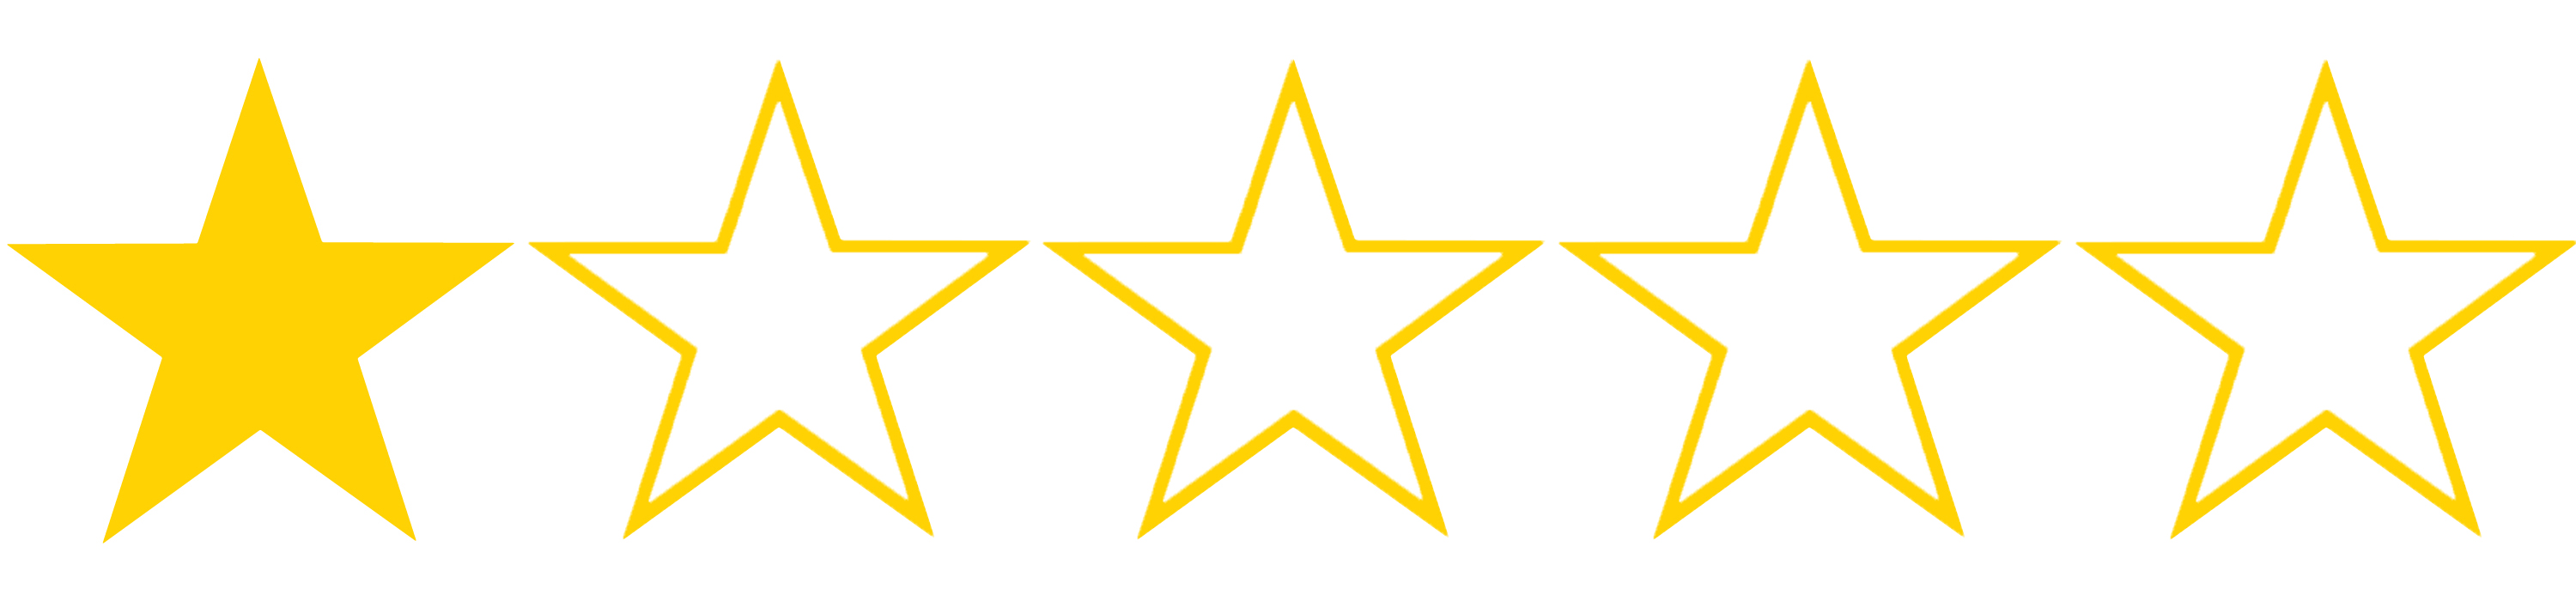 image of 1 star out of 5 rating